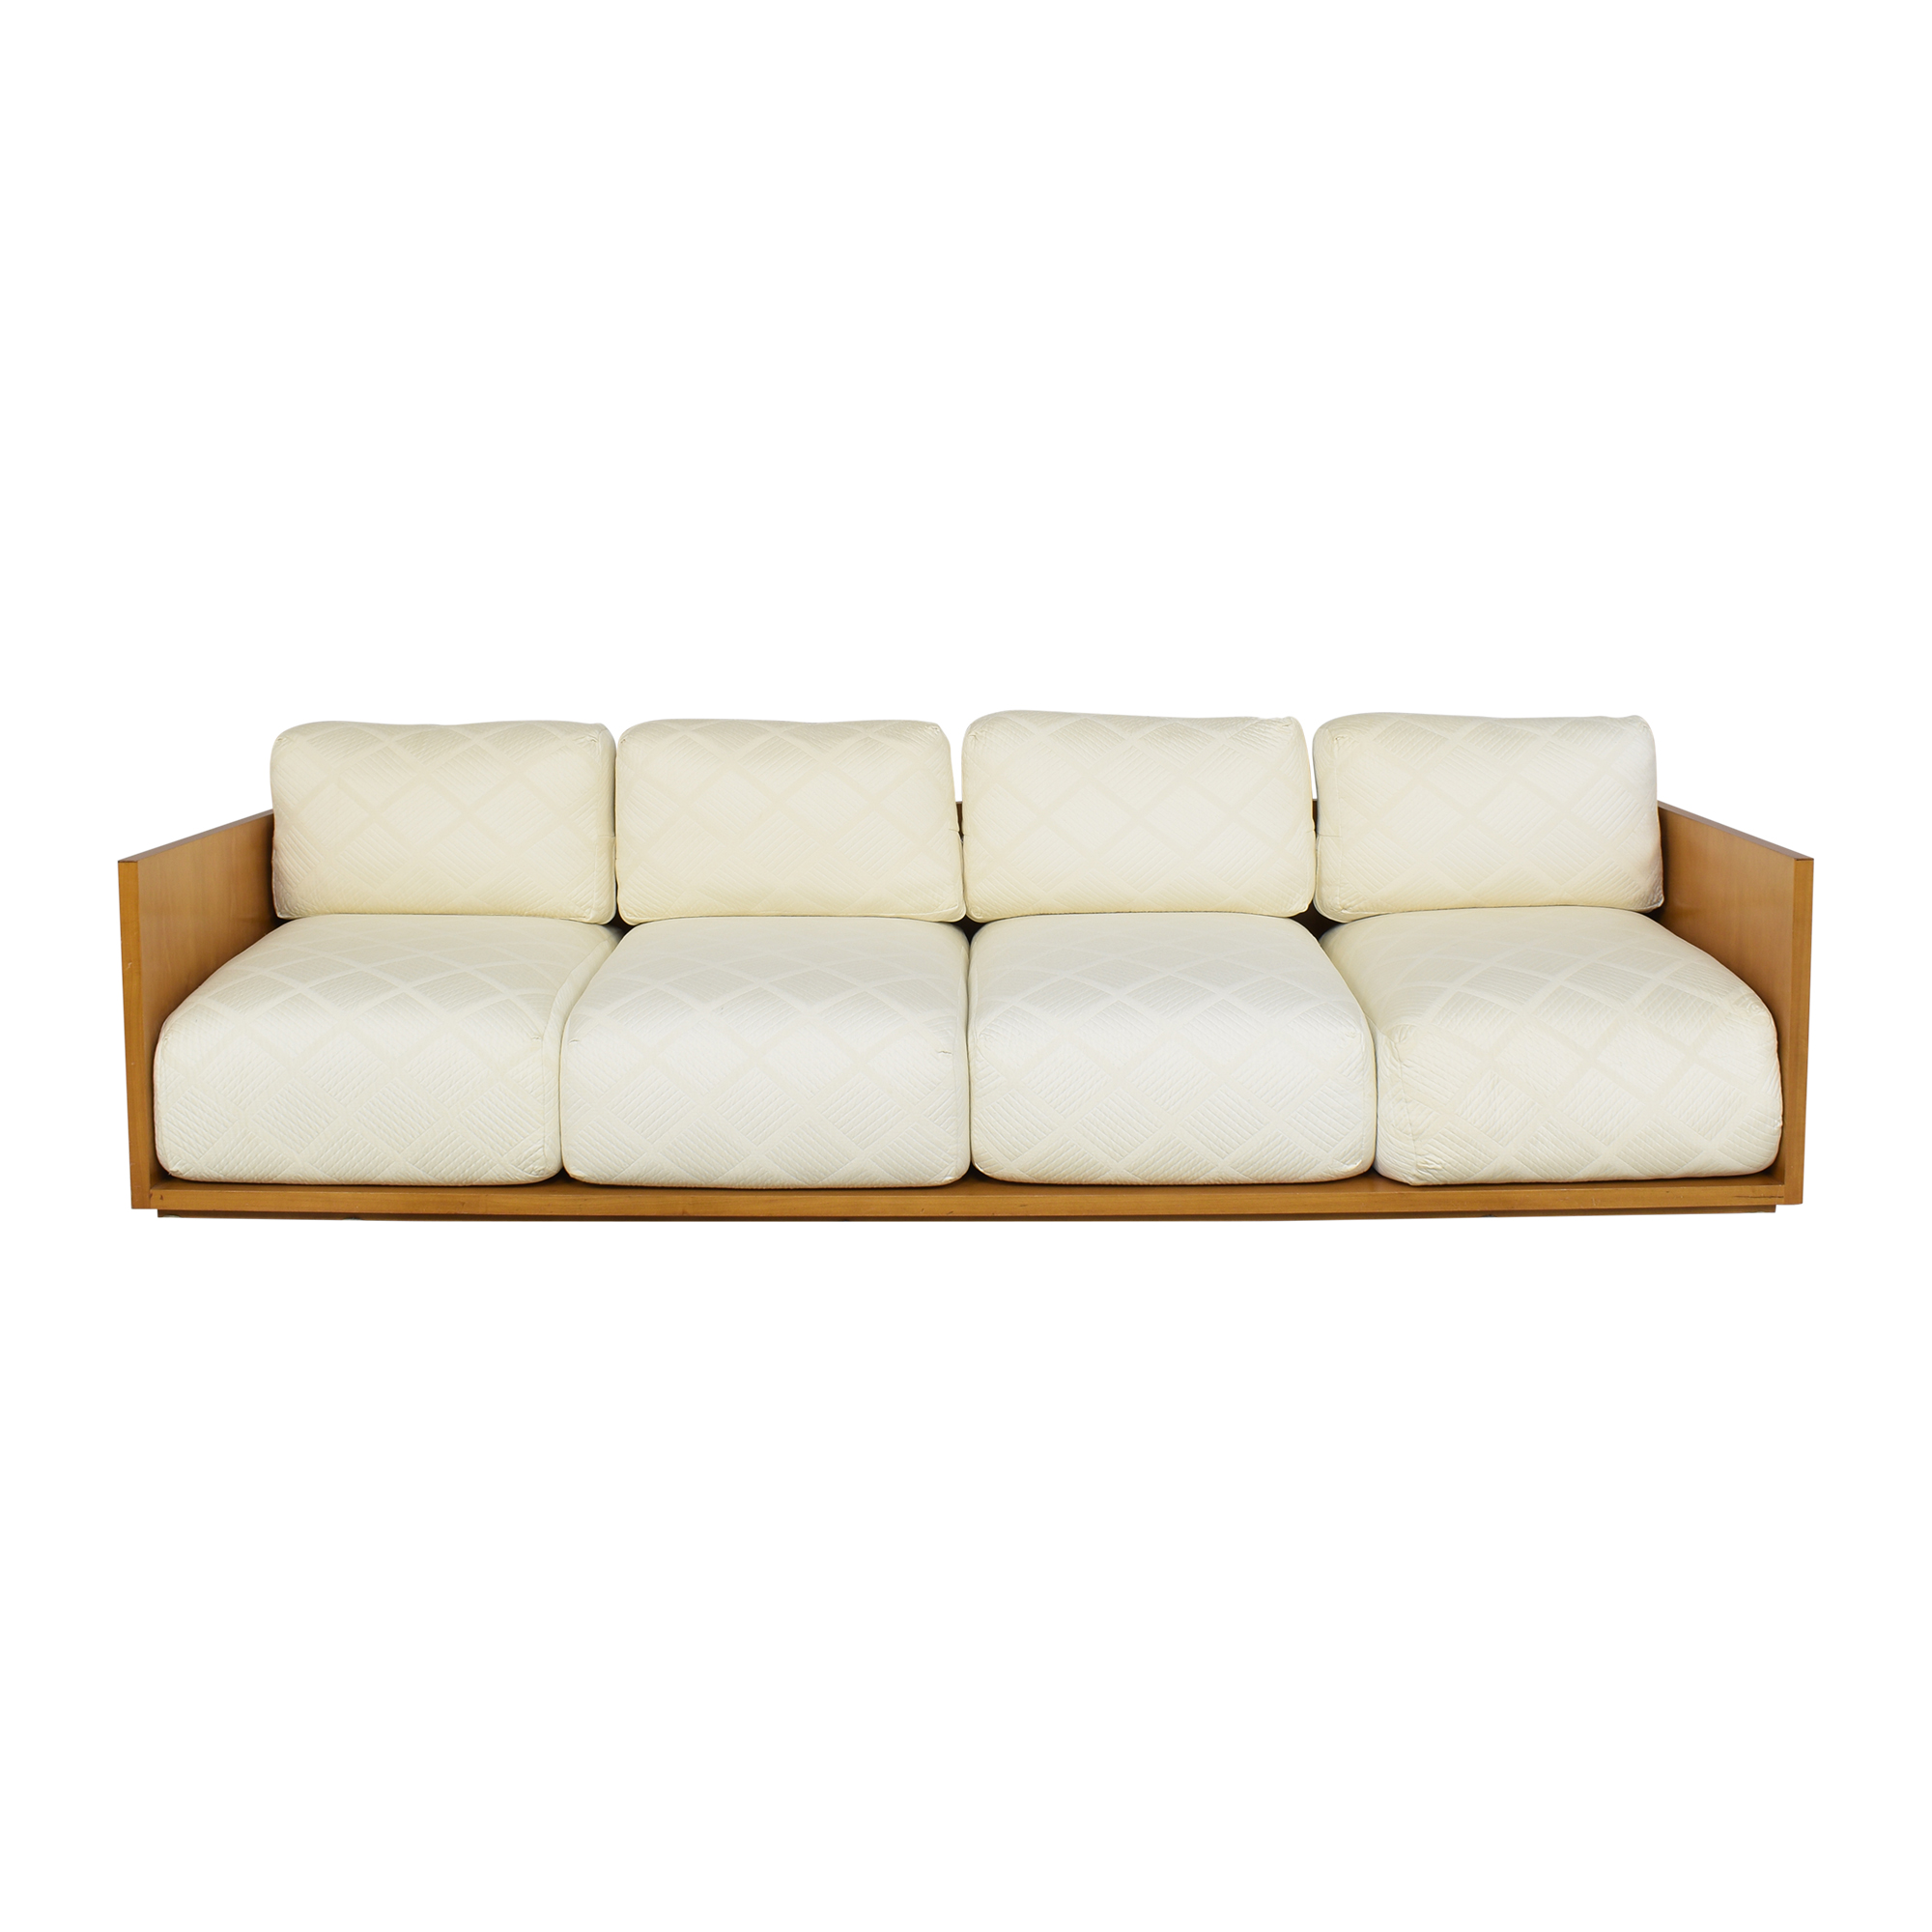 Custom Four Cushion Sofa / Sectionals